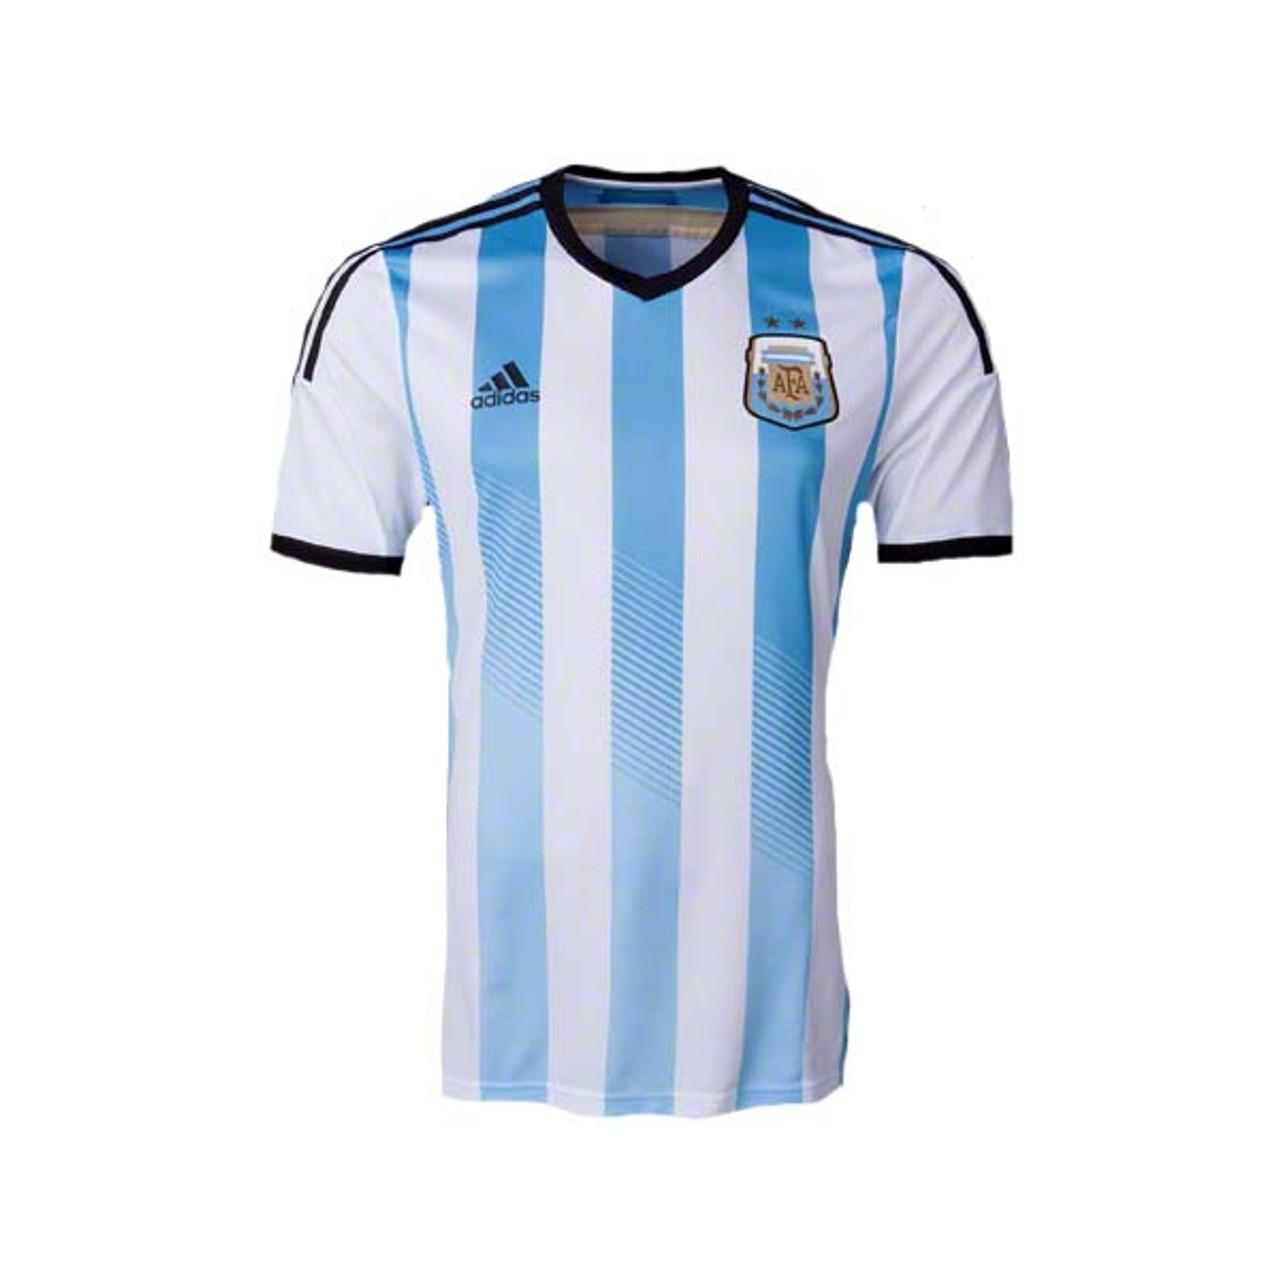 ADIDAS ARGENTINA WORLD CUP 2014 HOME